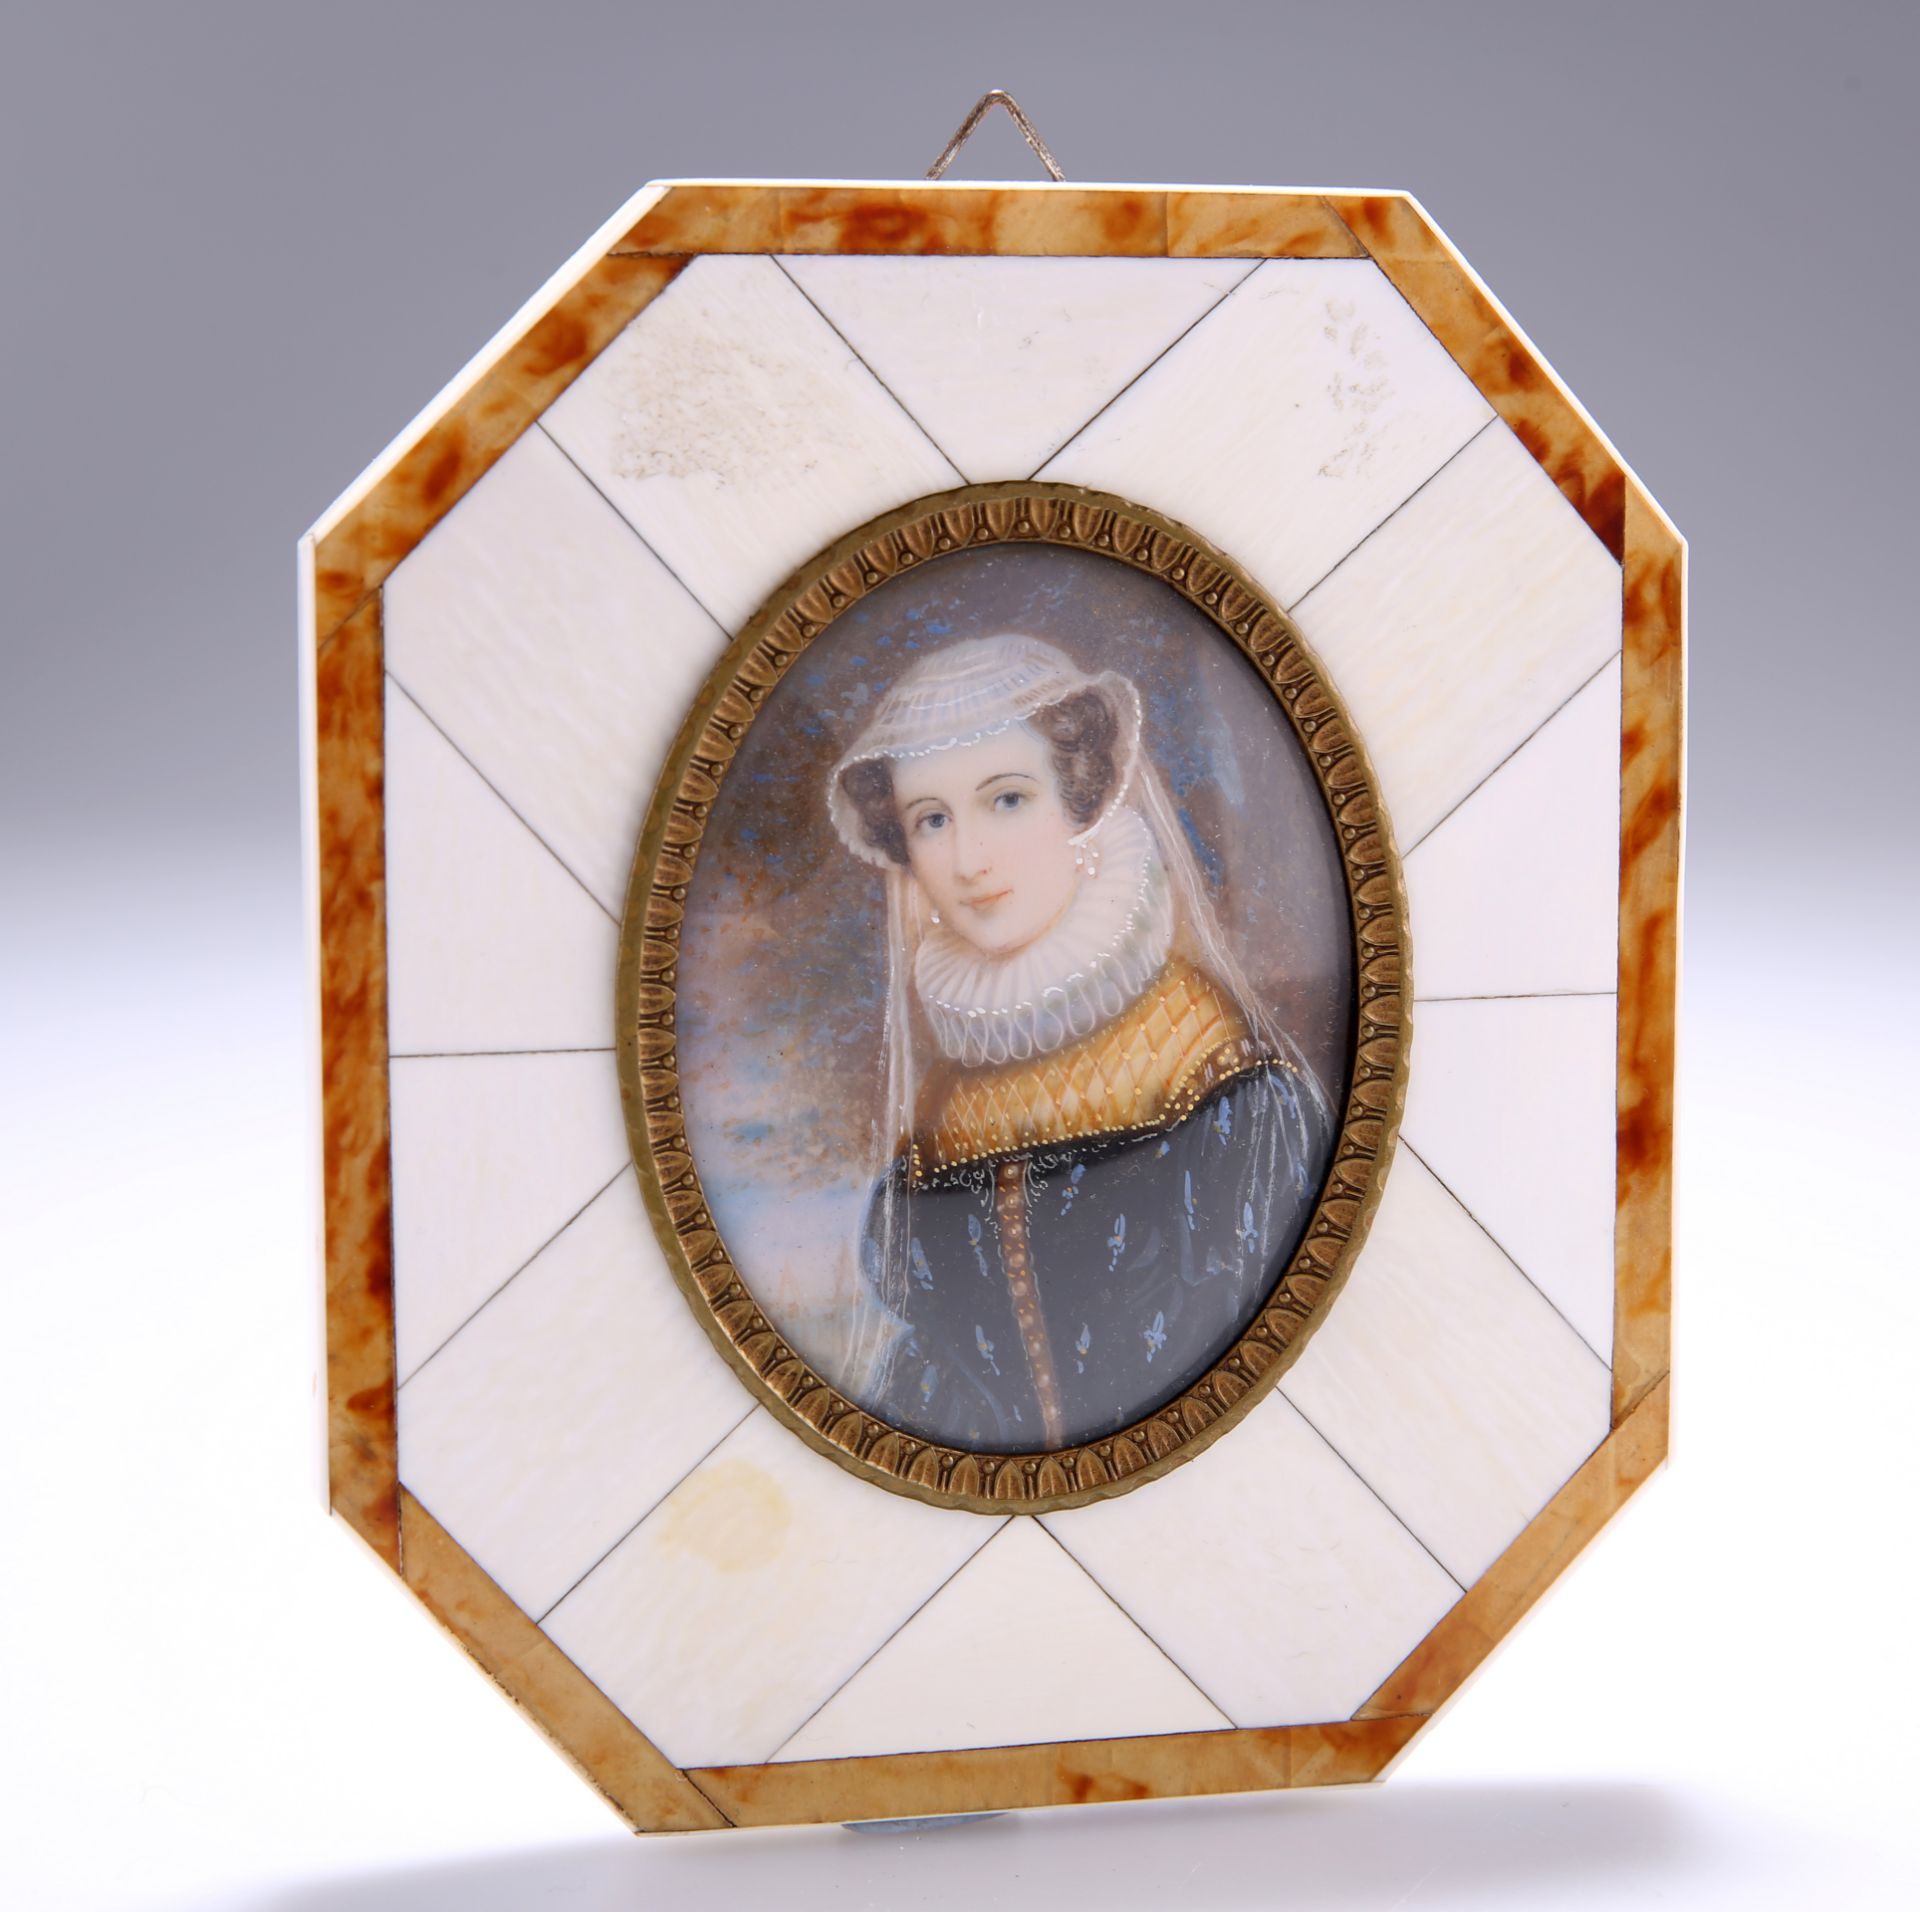 AN EARLY 20TH CENTURY PORTRAIT MINIATURE OF MARY STEWART, oval, watercolour on ivory, in an